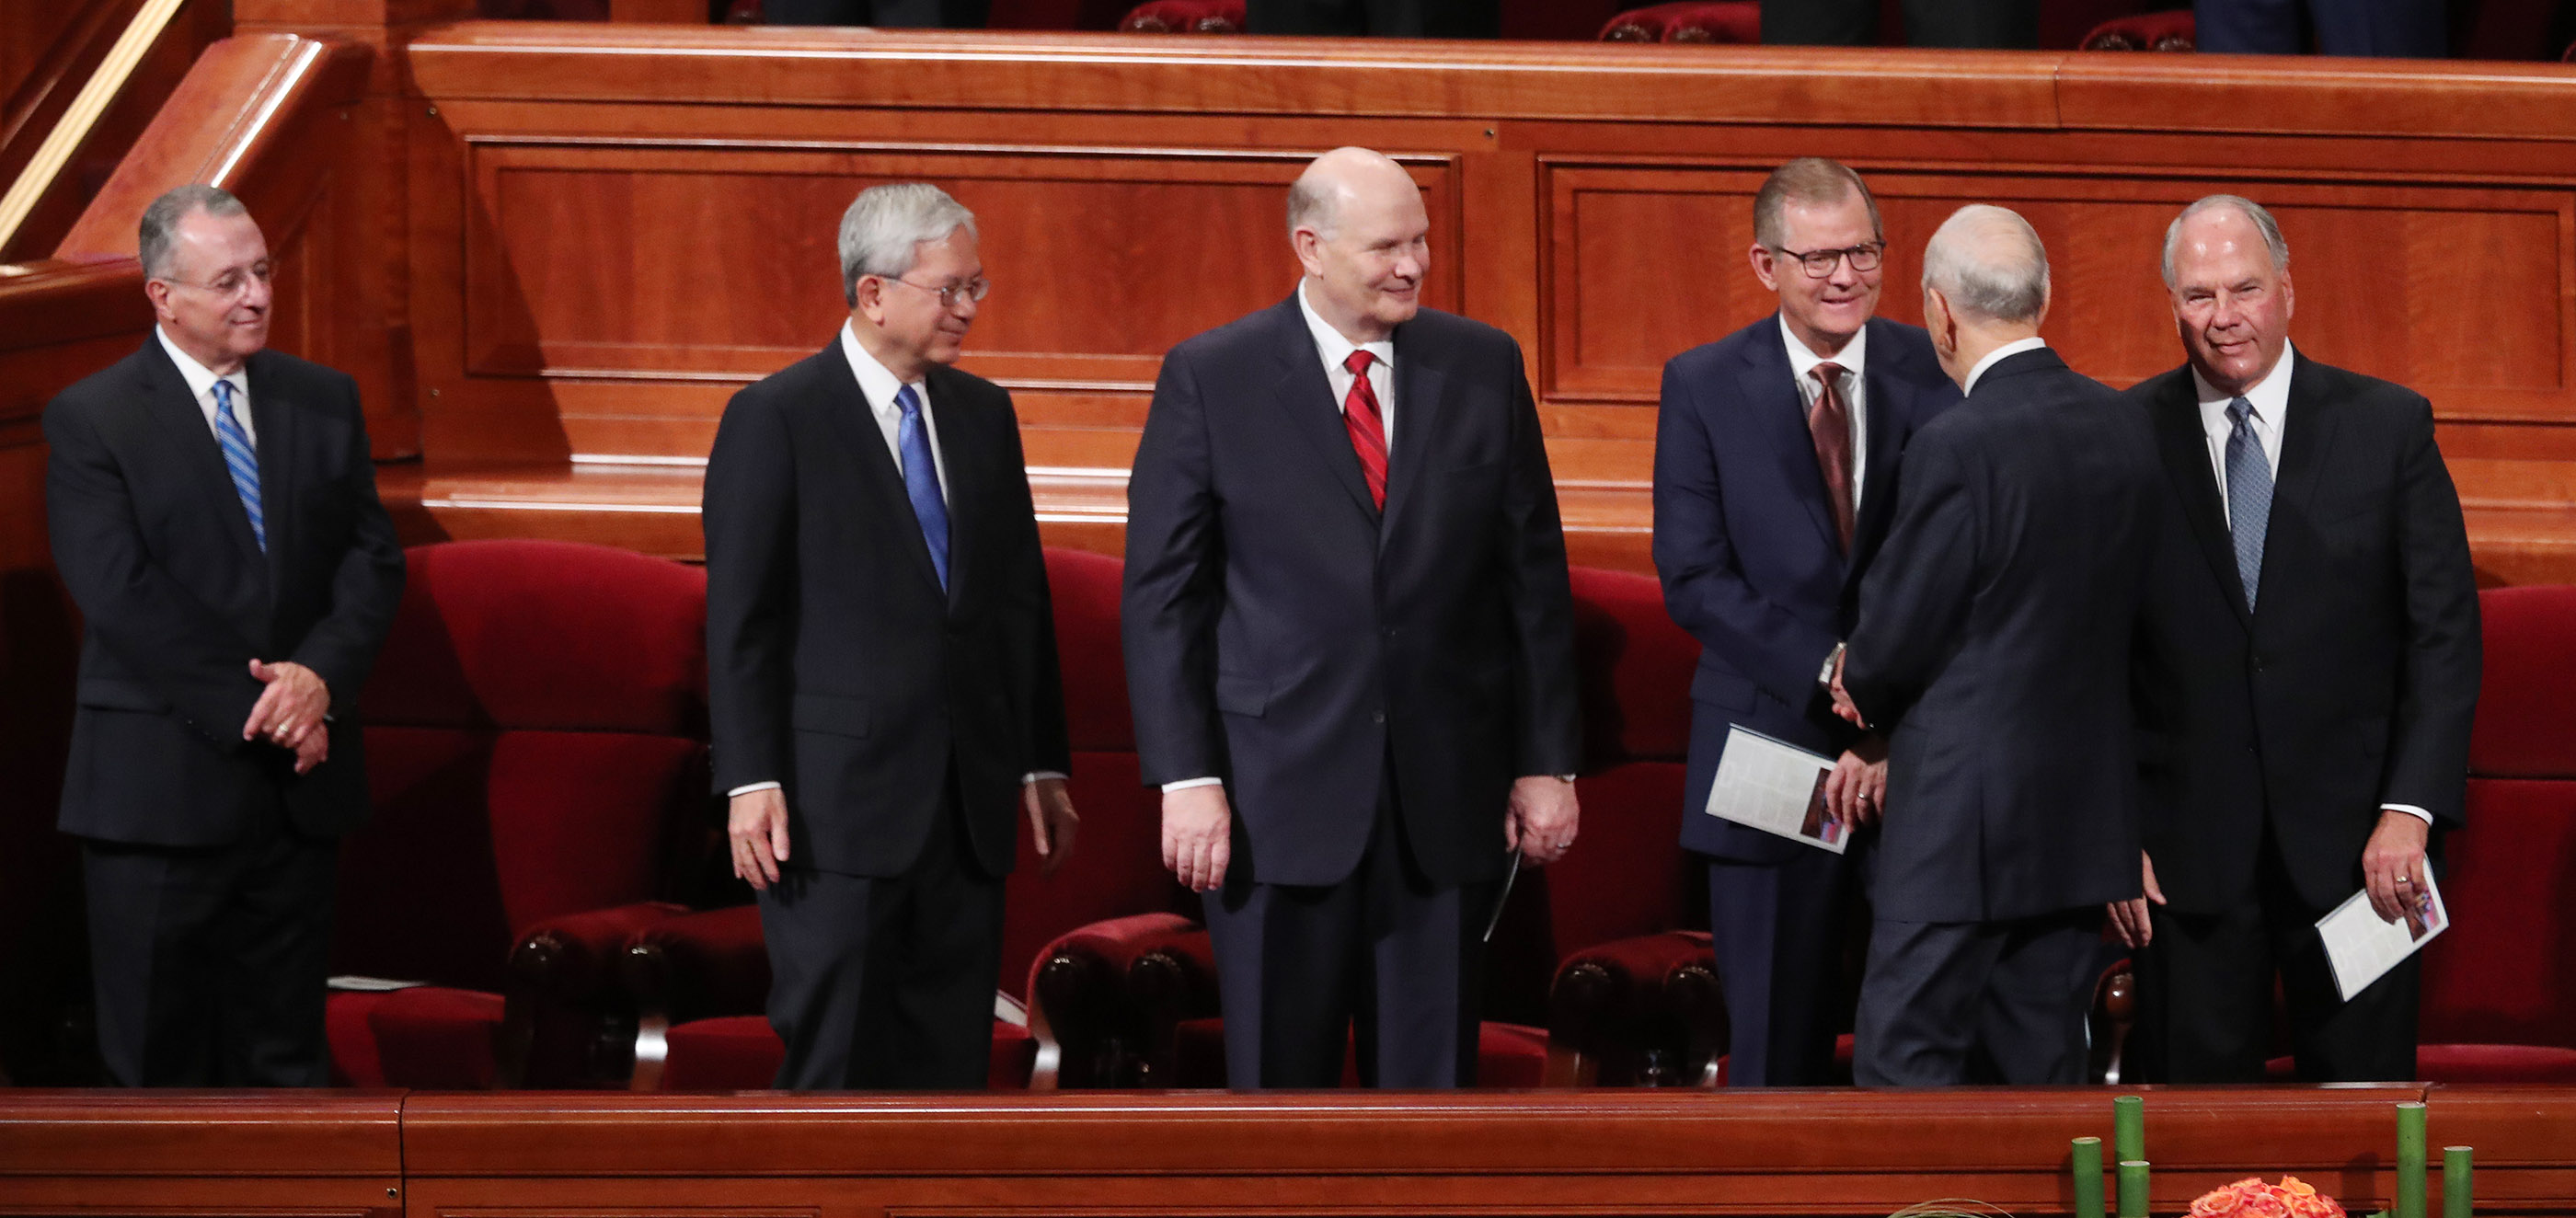 President Russell M. Nelson of The Church of Jesus Christ of Latter-day Saints greets some members of the Quorum of the Twelve Apostles during the 188th Semiannual General Conference of The Church of Jesus Christ of Latter-day Saints in Salt Lake City on Sunday, Oct. 7, 2018.